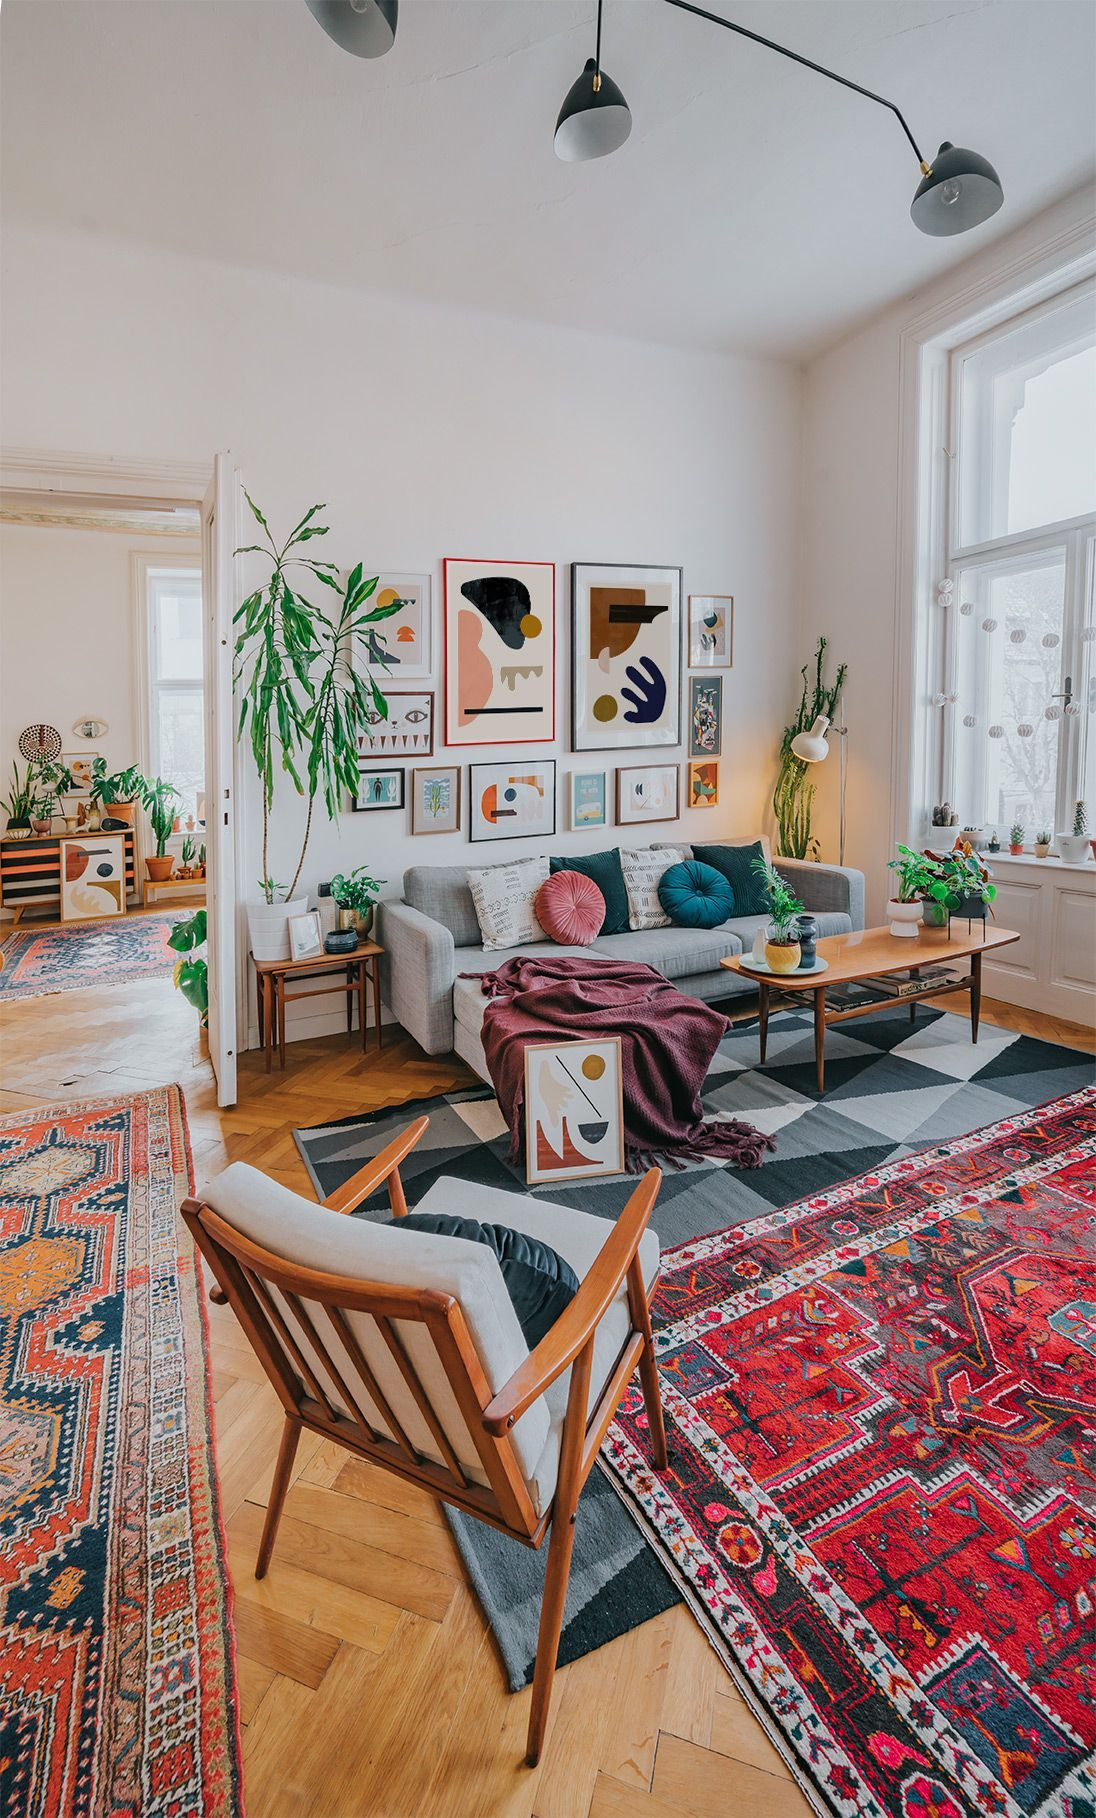 Mid Century Modern Furniture Oriental Rugs And Lots Of Modern Minimalist Art By Jan Skacelik Interiordesign 2020 Minimalist Oturma Odalari Modern Mobilya Ic Mekan